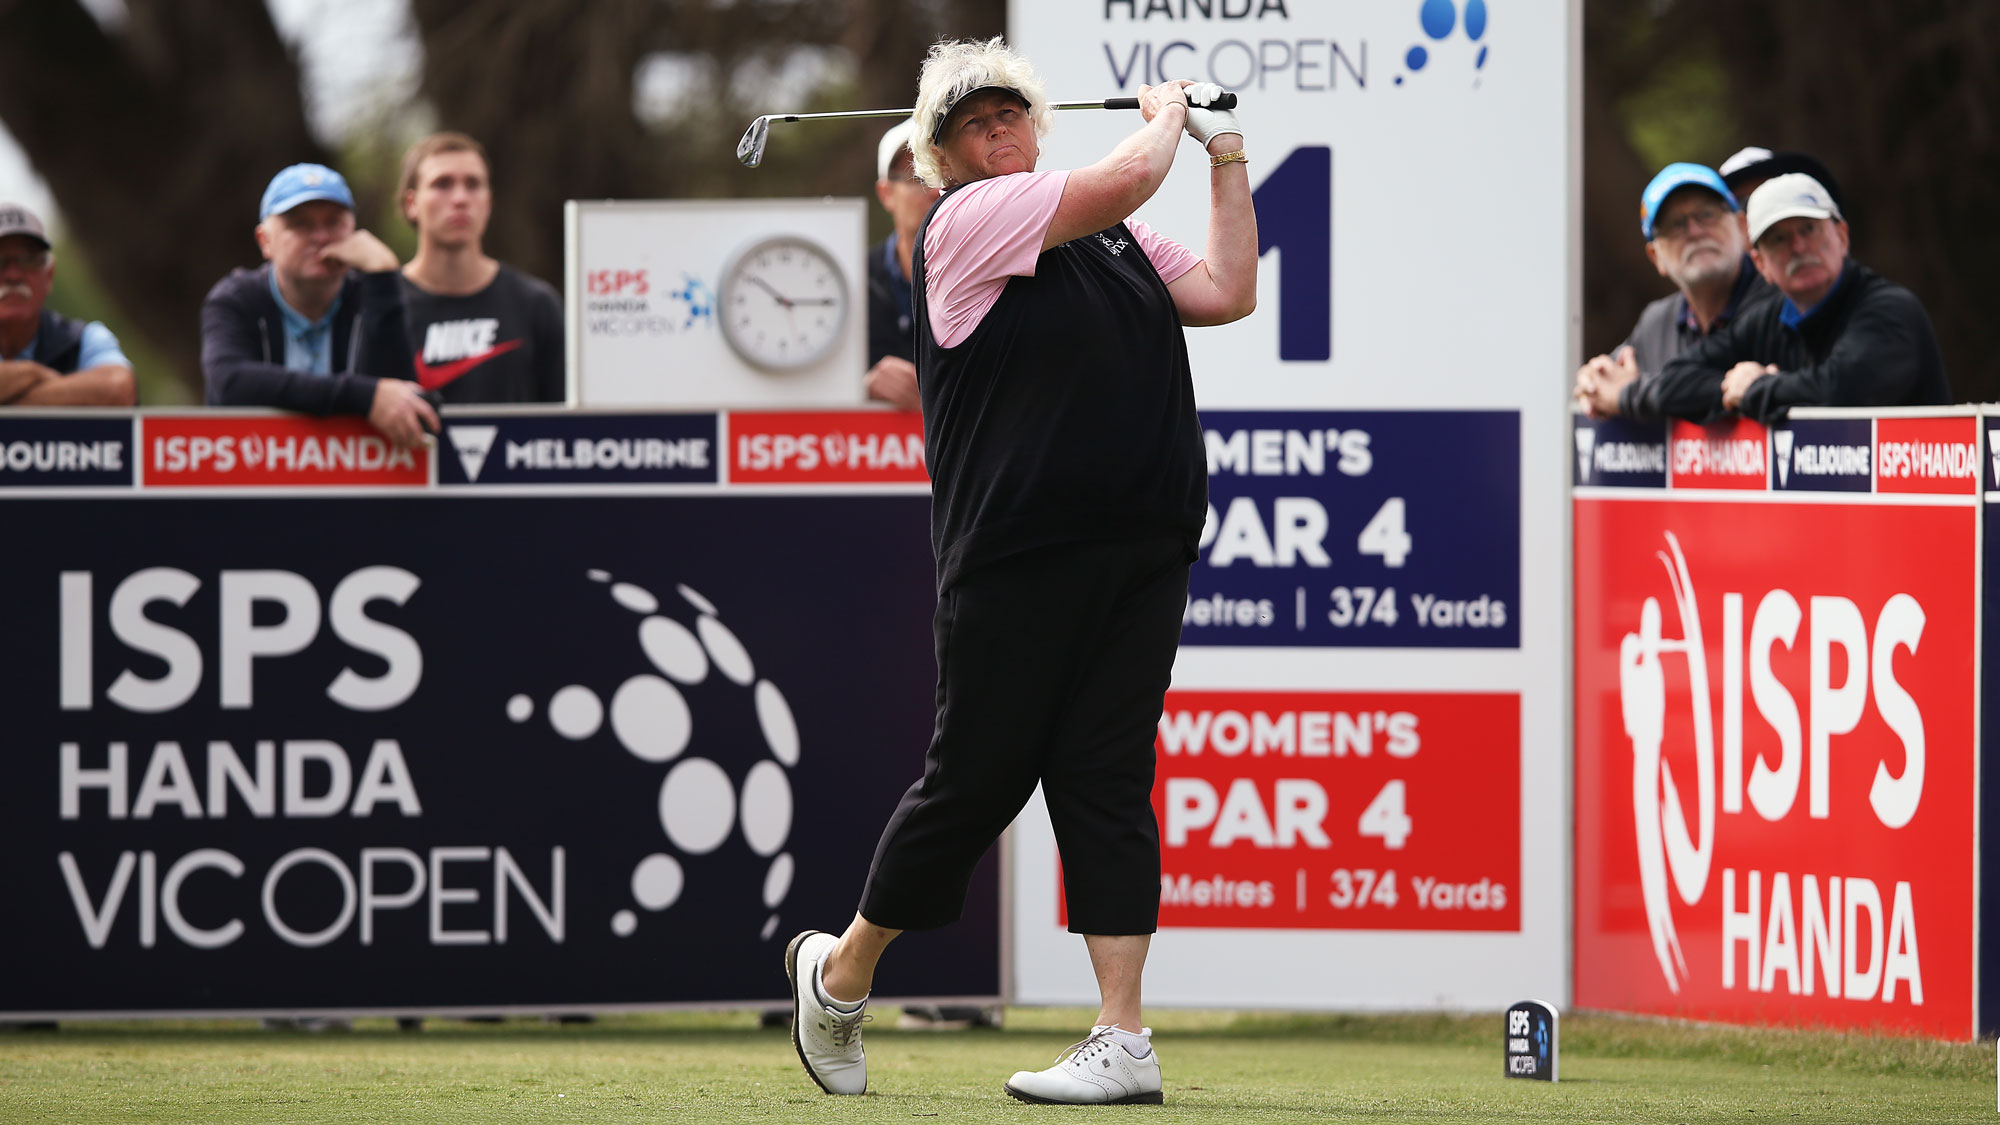 Laura Davies tees off during Round 1 of the ISPS Handa Vic Open